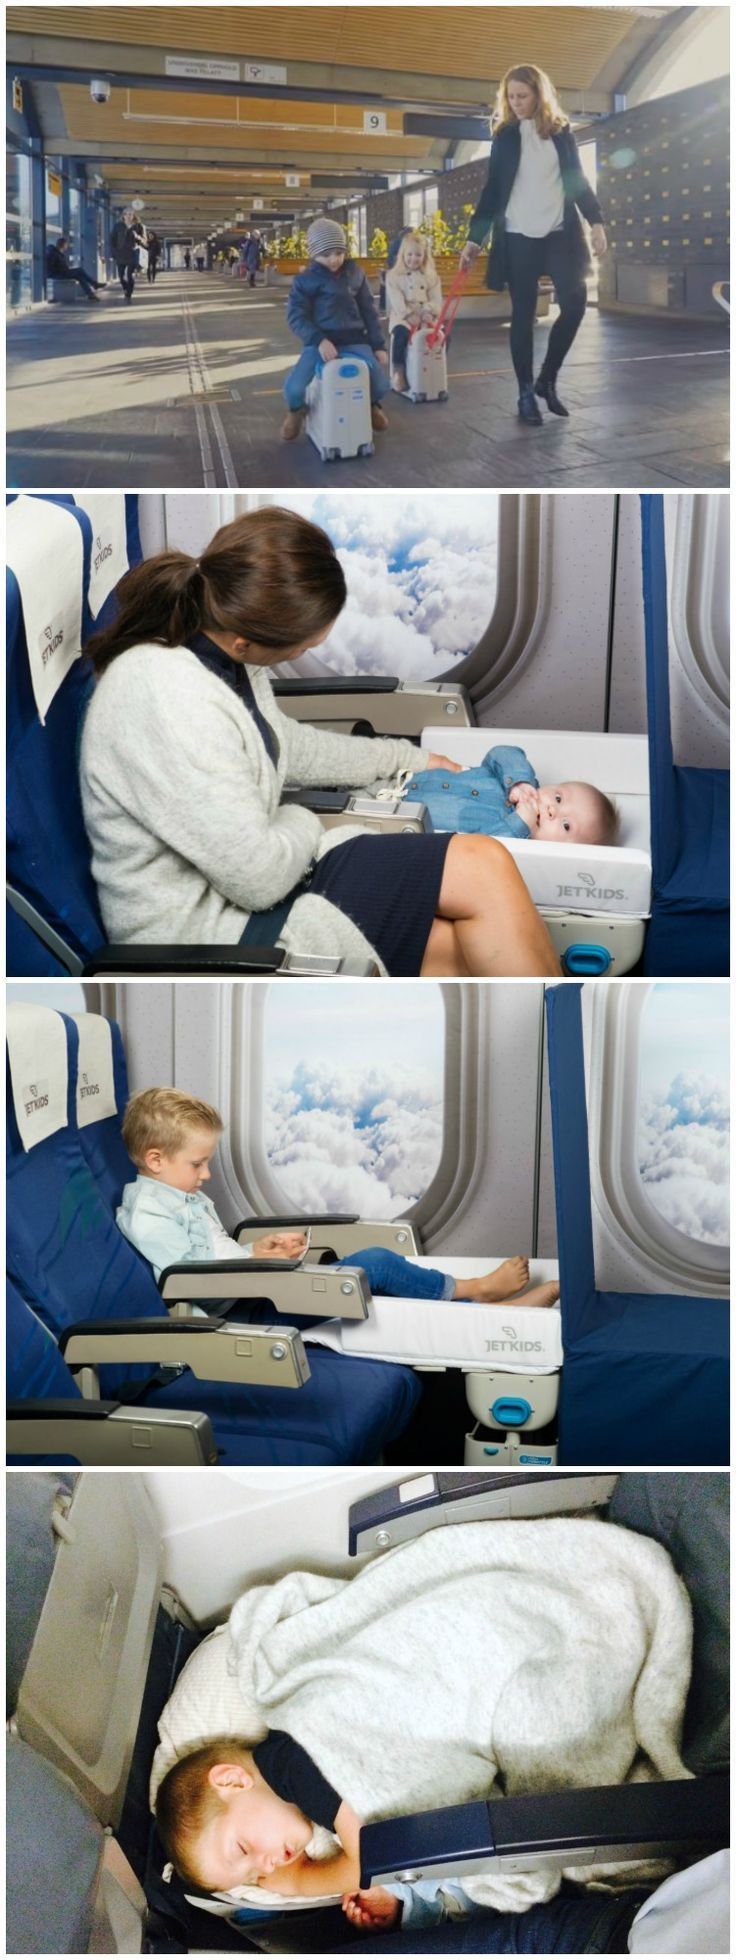 BedBox is your child´s hand luggage and fun ride-on suitcase that transforms into a comfy inflight bed, all in the very same box.